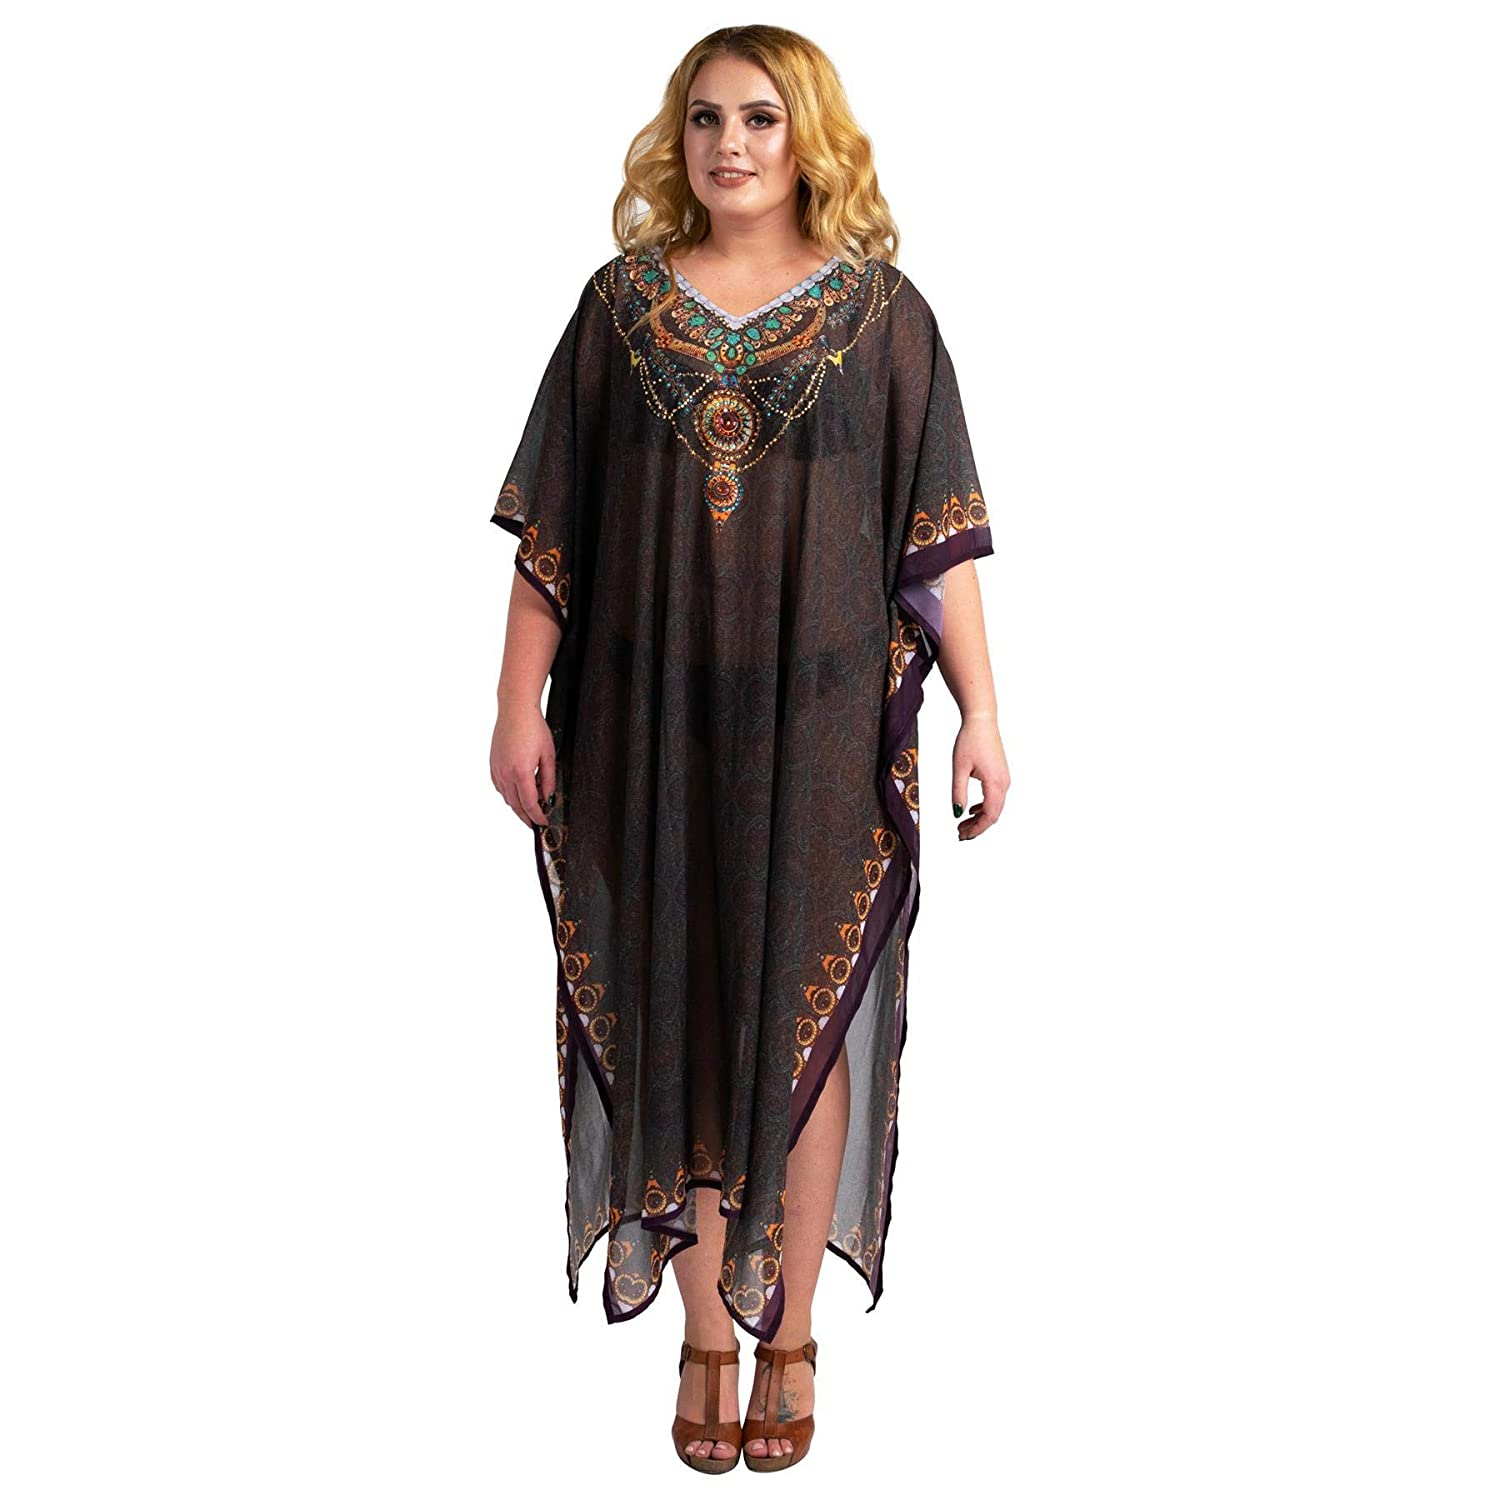 1920s Plus Size Flapper Dresses, Gatsby Dresses, Flapper Costumes Miss Lavish London Stonework and Hand Embroidered Kaftans Suiting Teens to Adult Women in Regular to Plus Size $17.99 AT vintagedancer.com